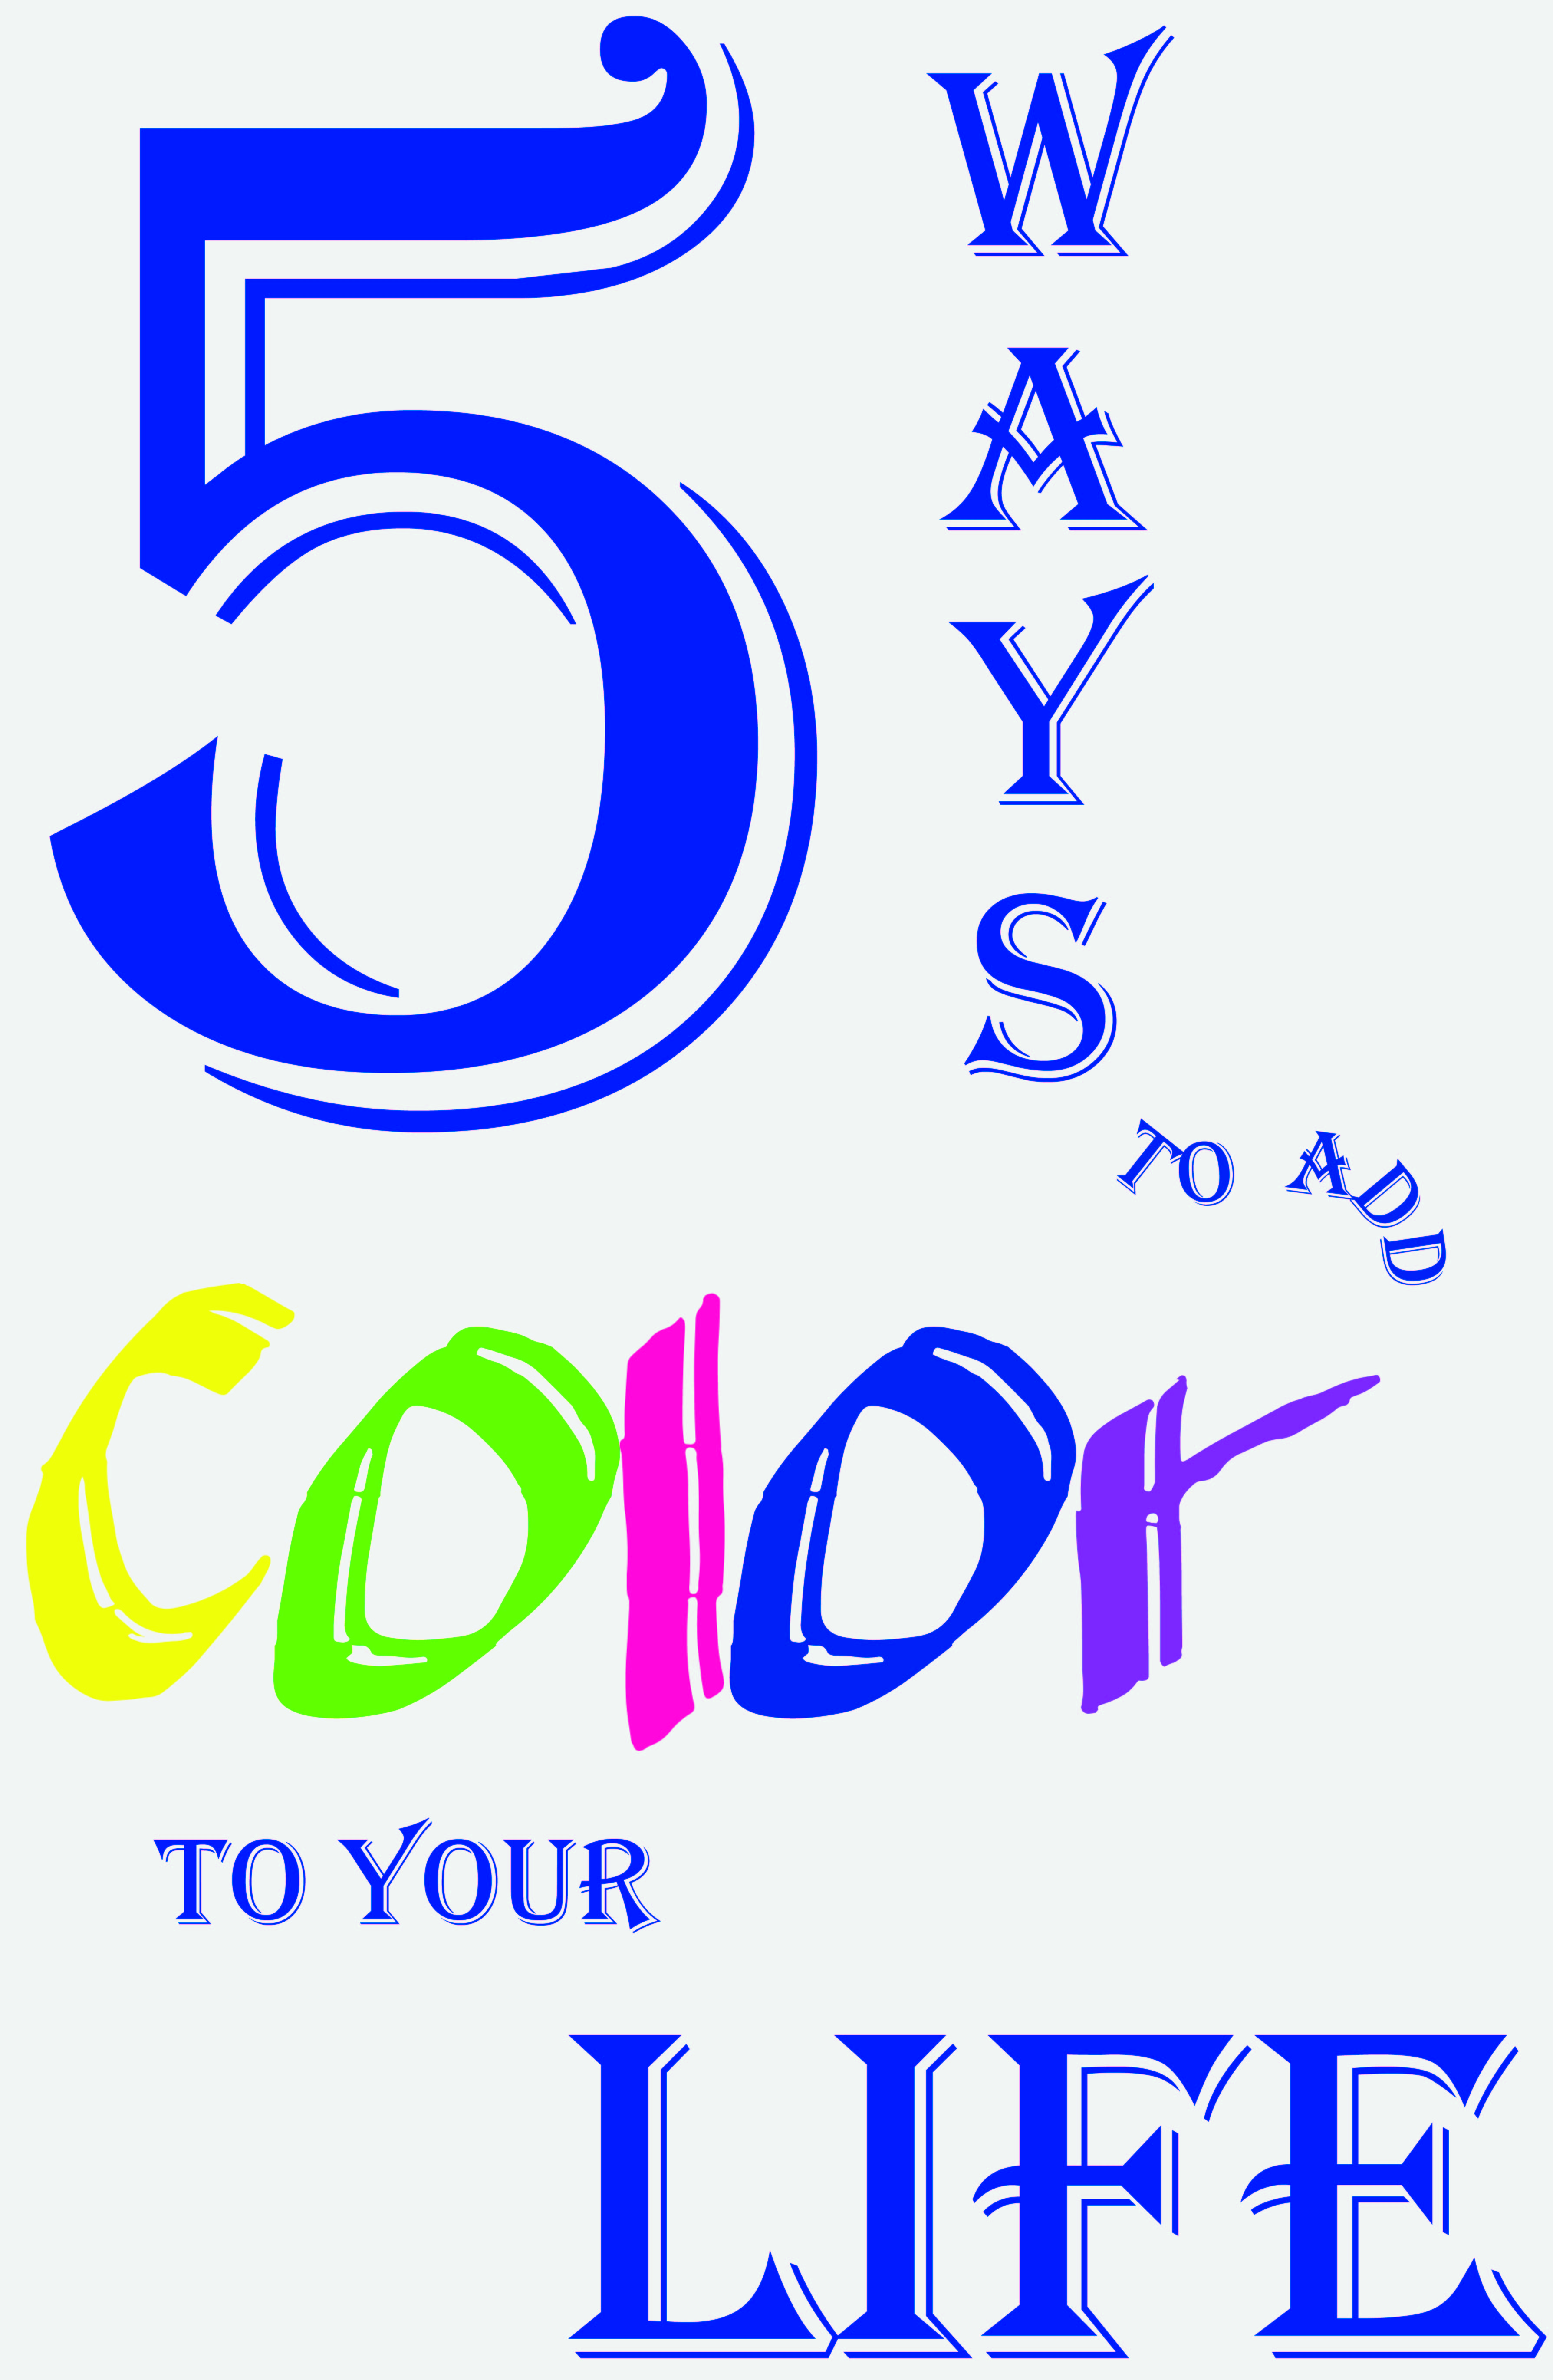 5 Ways to Add Color-01